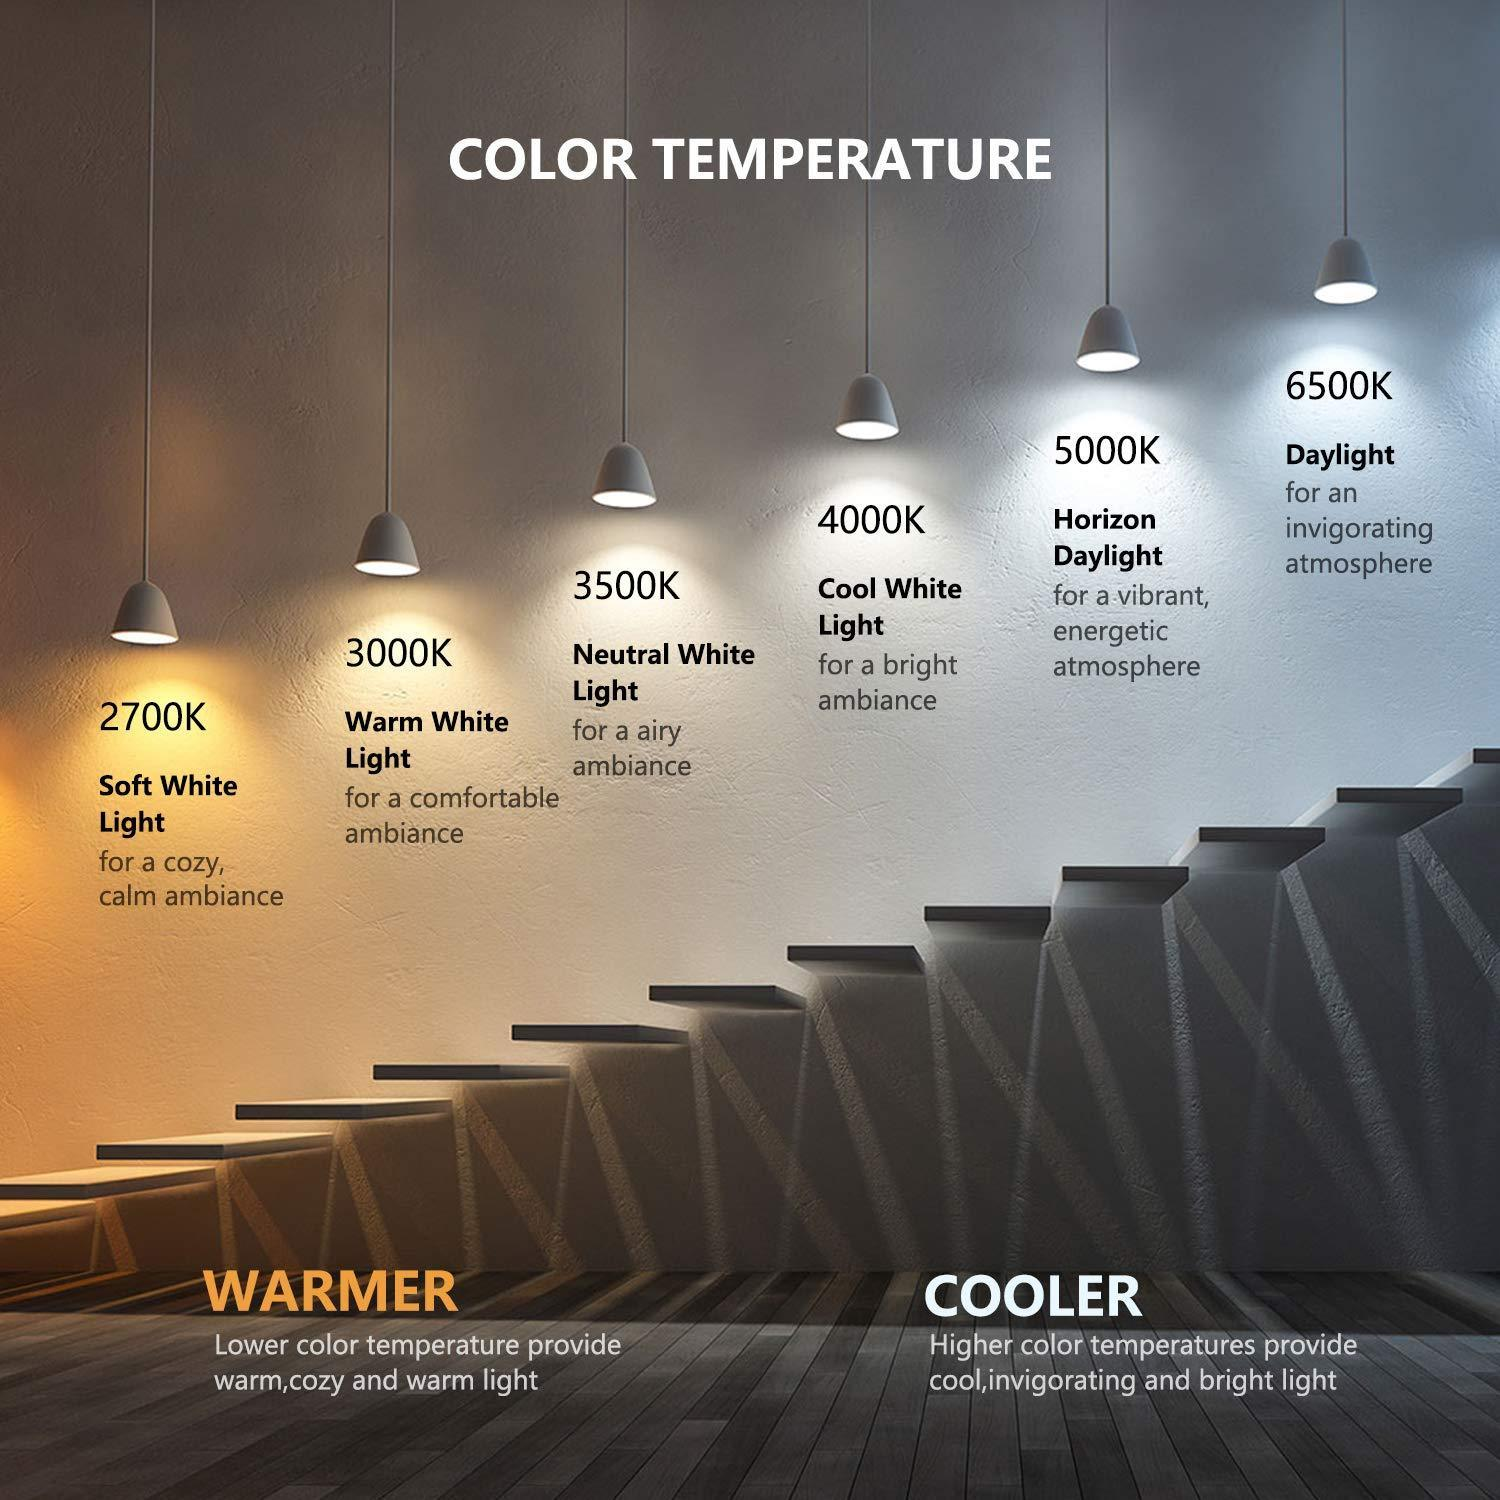 Treatlife Color RGB Paquete de 4 Focos LED Inteligentes WiFi No Requiere Hub Funciona con Alexa & Google Assistant - TecnoMarket